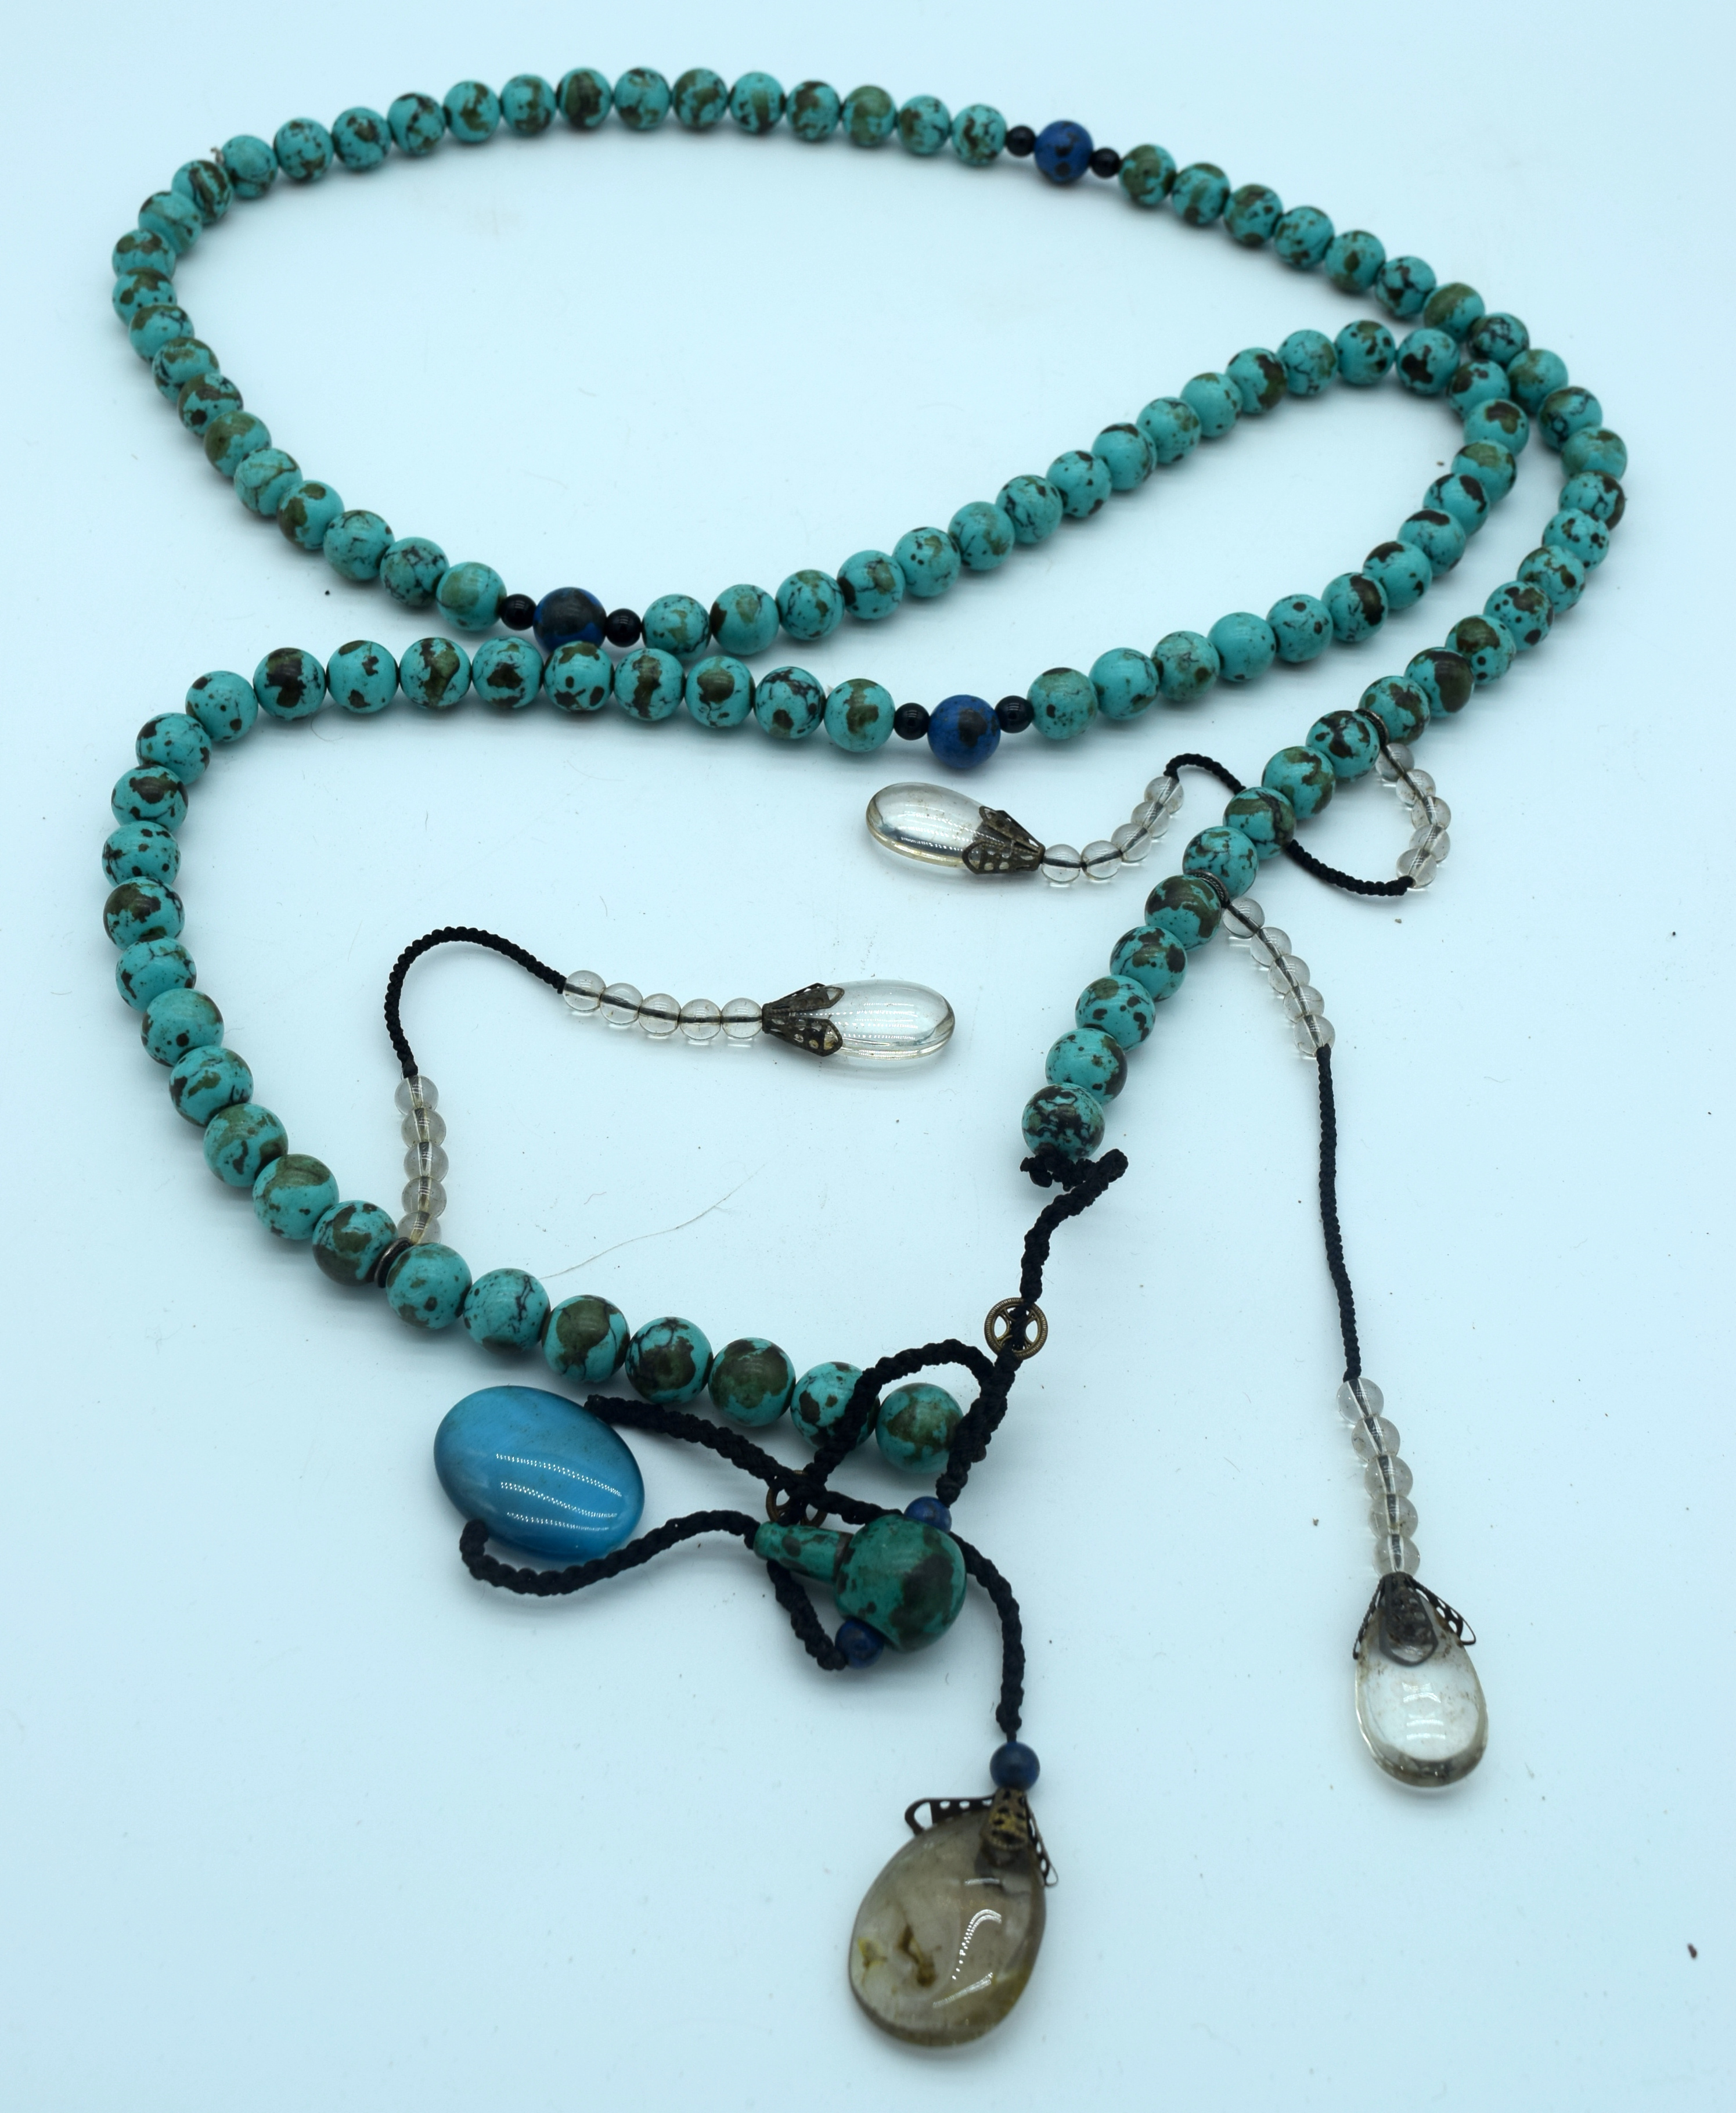 A long Turquoise stone necklace with hanging glass pendants 170cm.